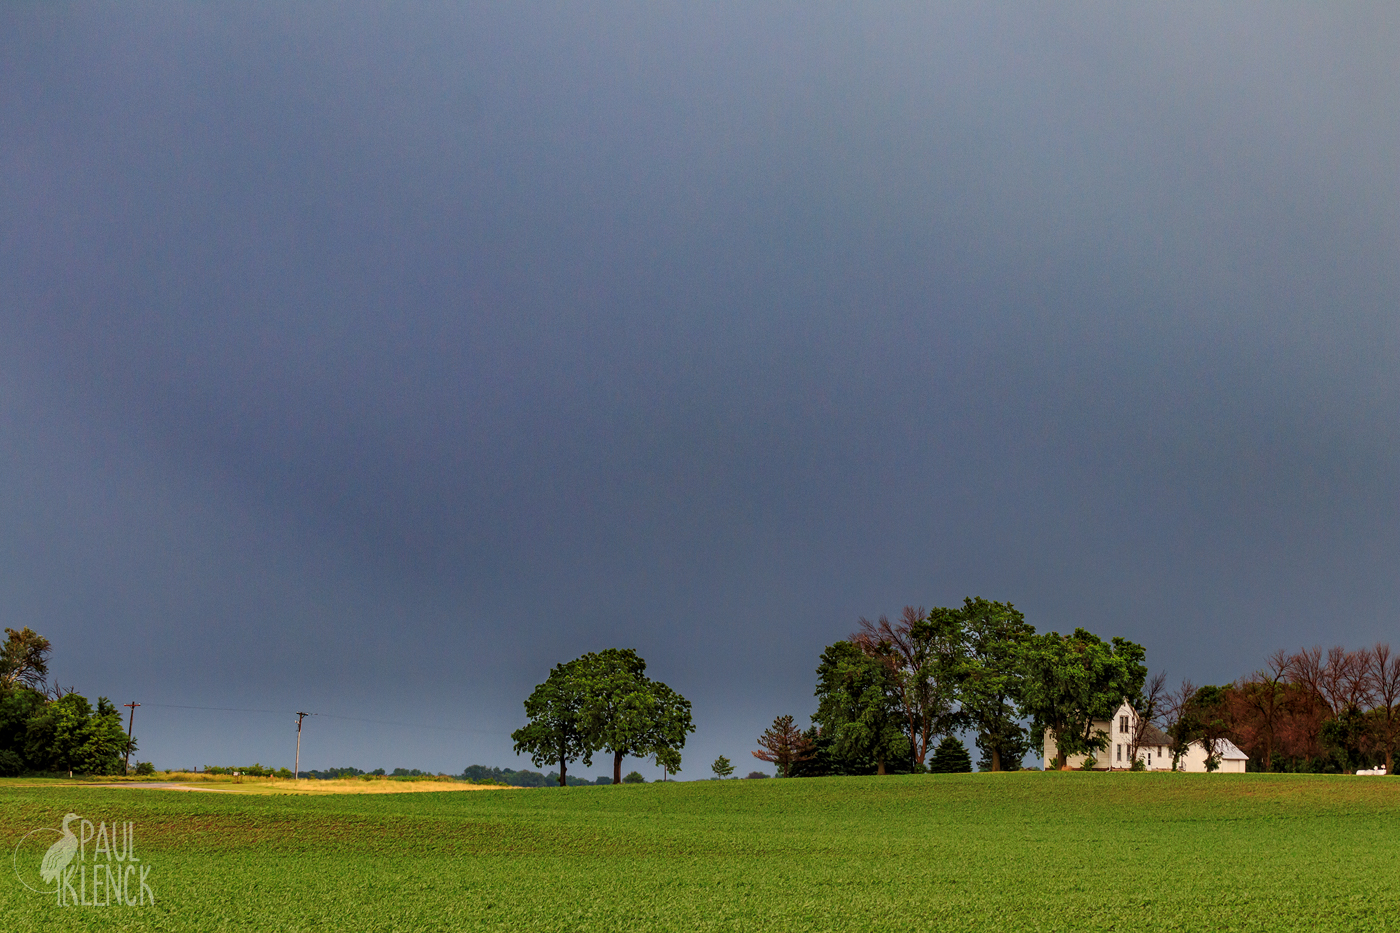 Farmhouse and soybeans under the darkening sky